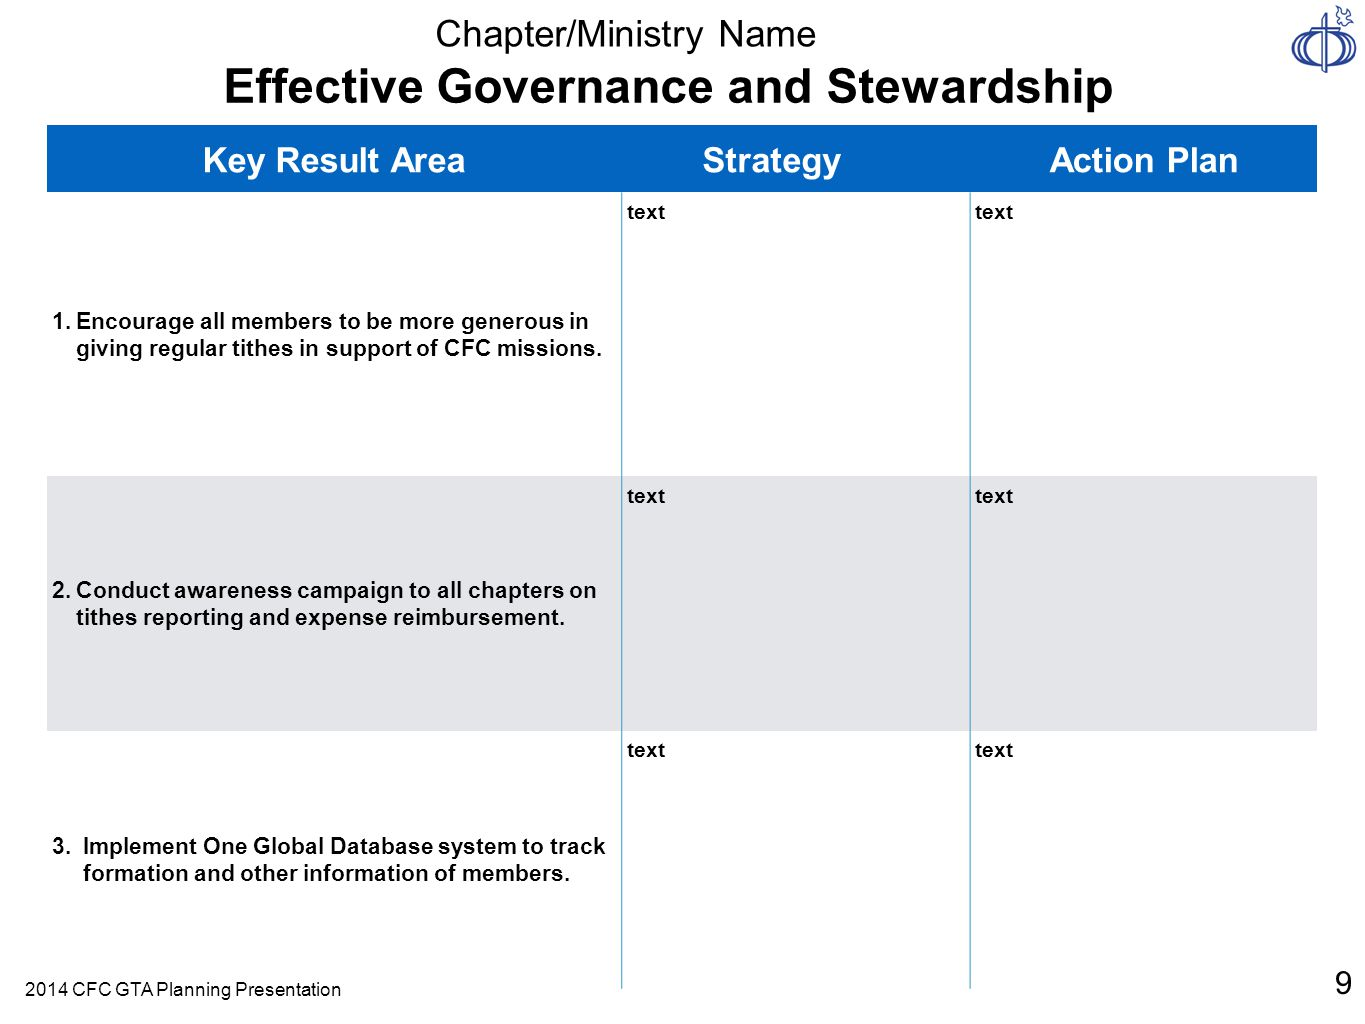 Effective Governance and Stewardship